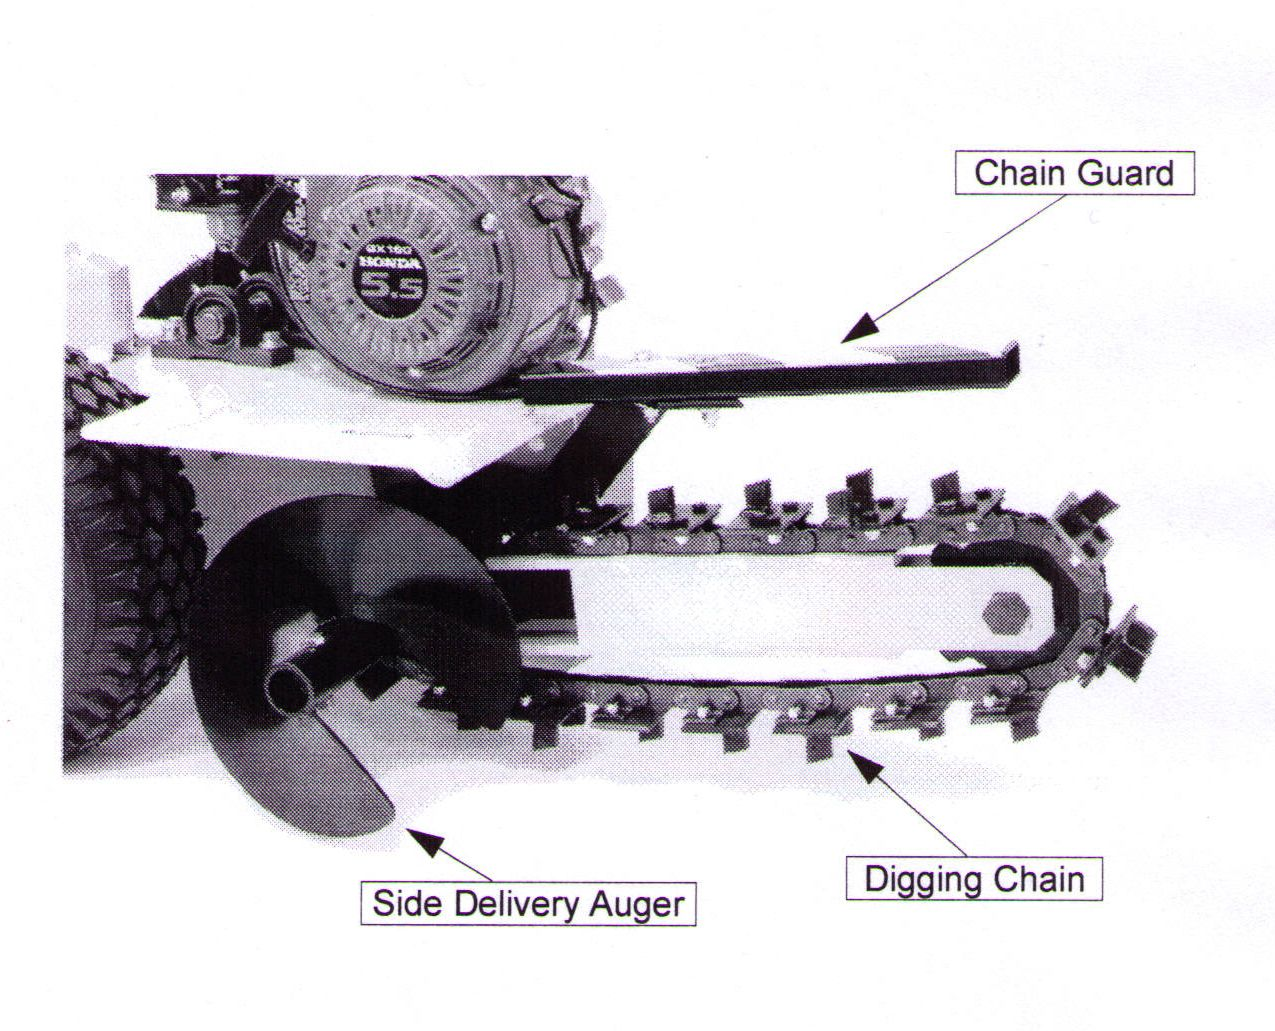 Side Delivery Auger And Chain Guard Shown, Chain Shown Has Shark Style Digging Teeth